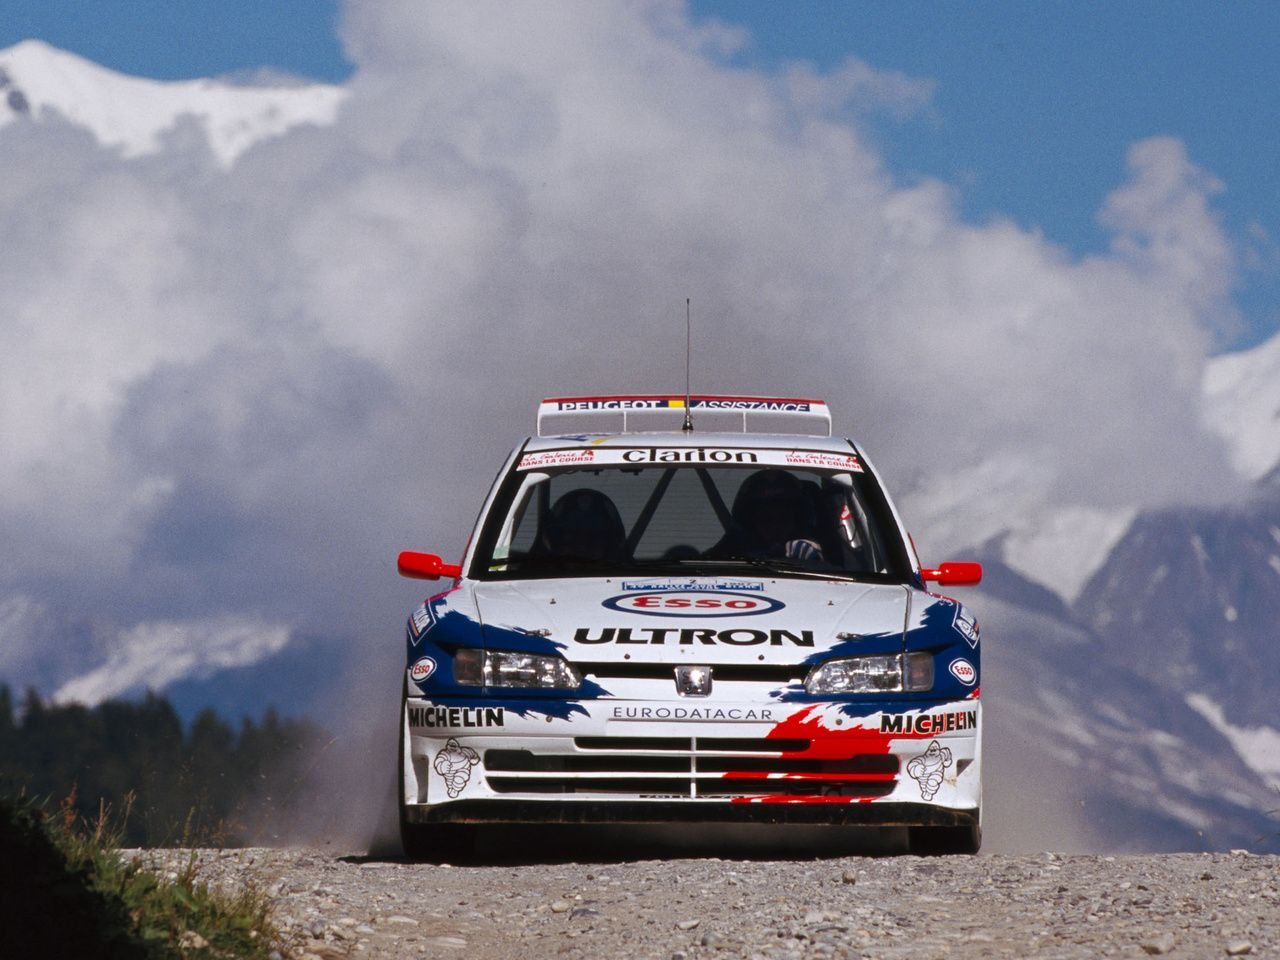 peugeot 306 maxi rally car peugeot pinterest rally car peugeot and rally. Black Bedroom Furniture Sets. Home Design Ideas